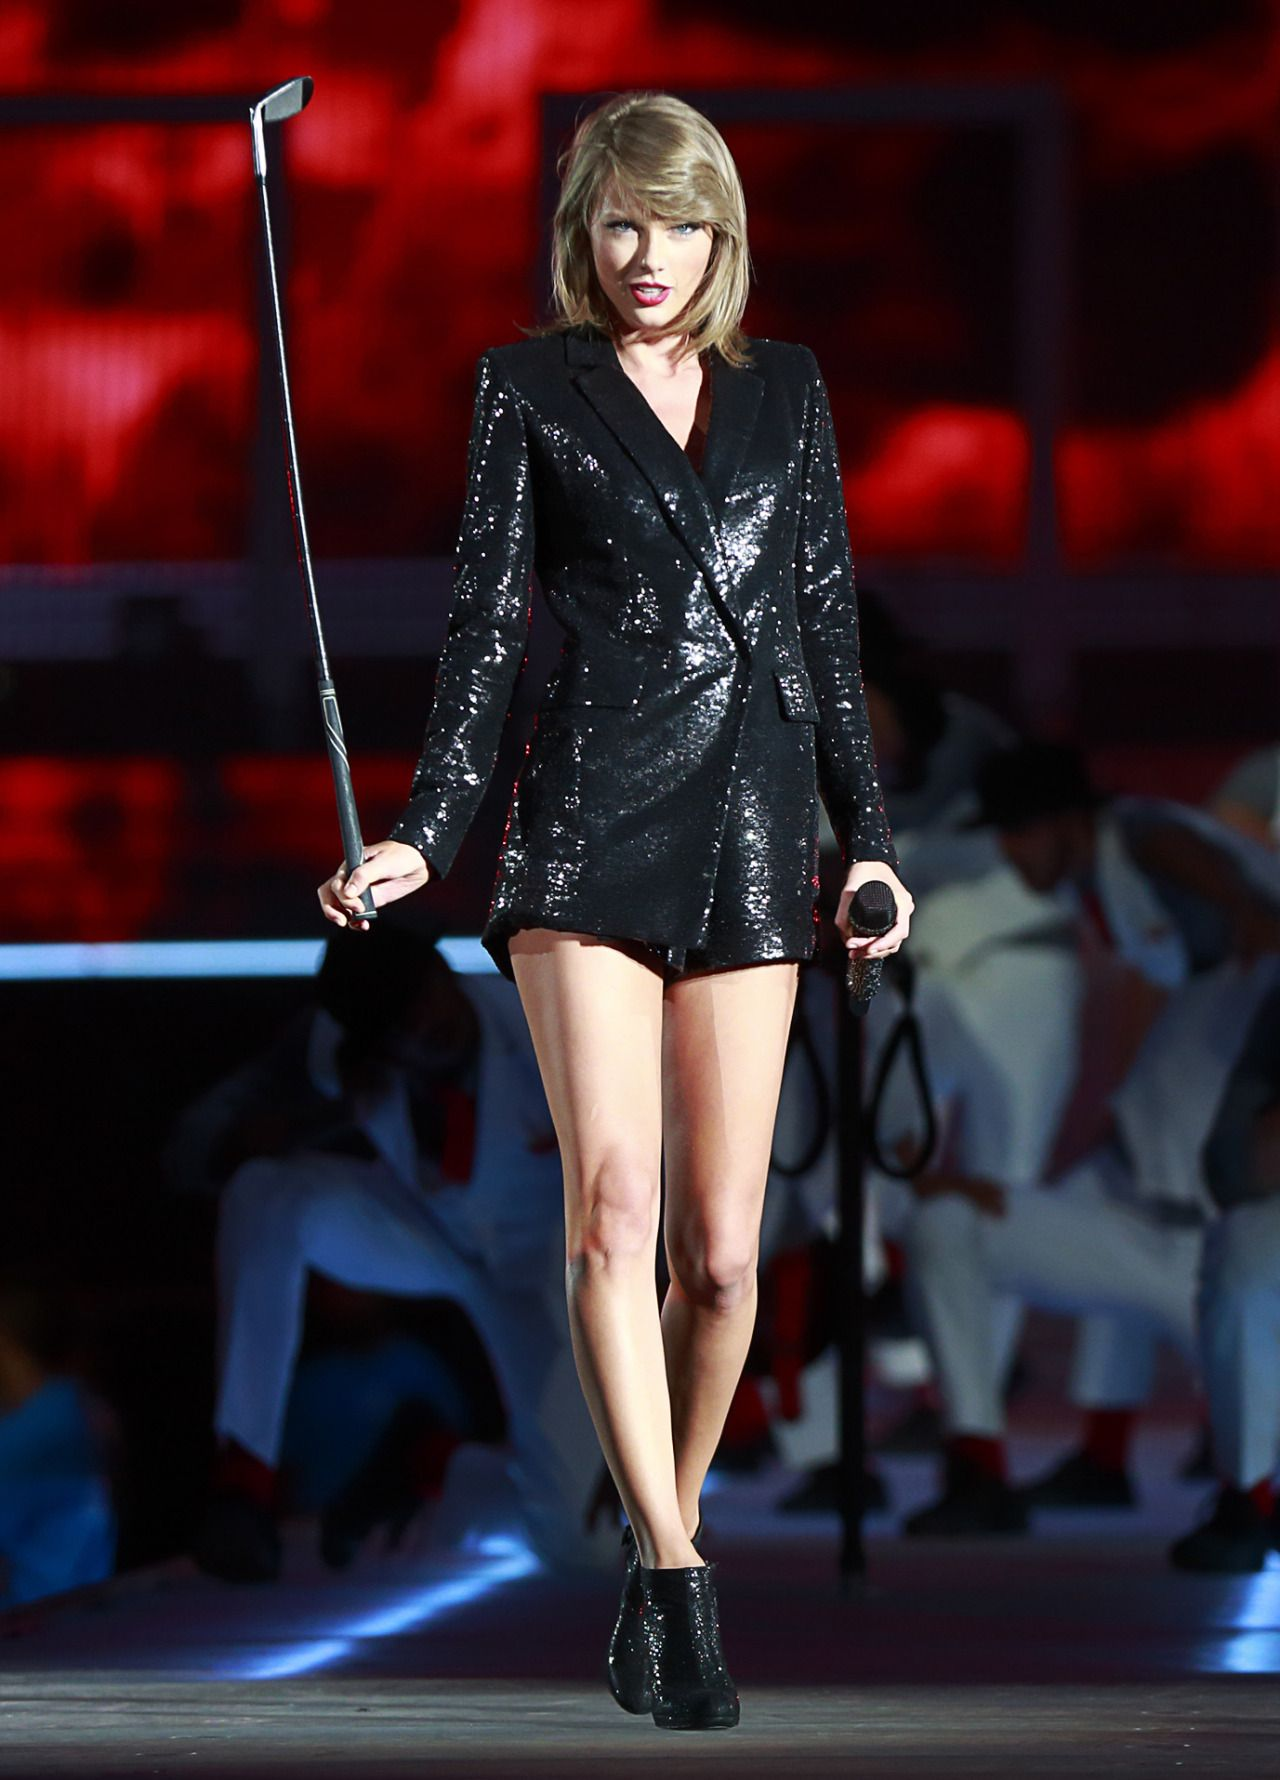 Taylor performing Blank Space during the 1989 World Tour